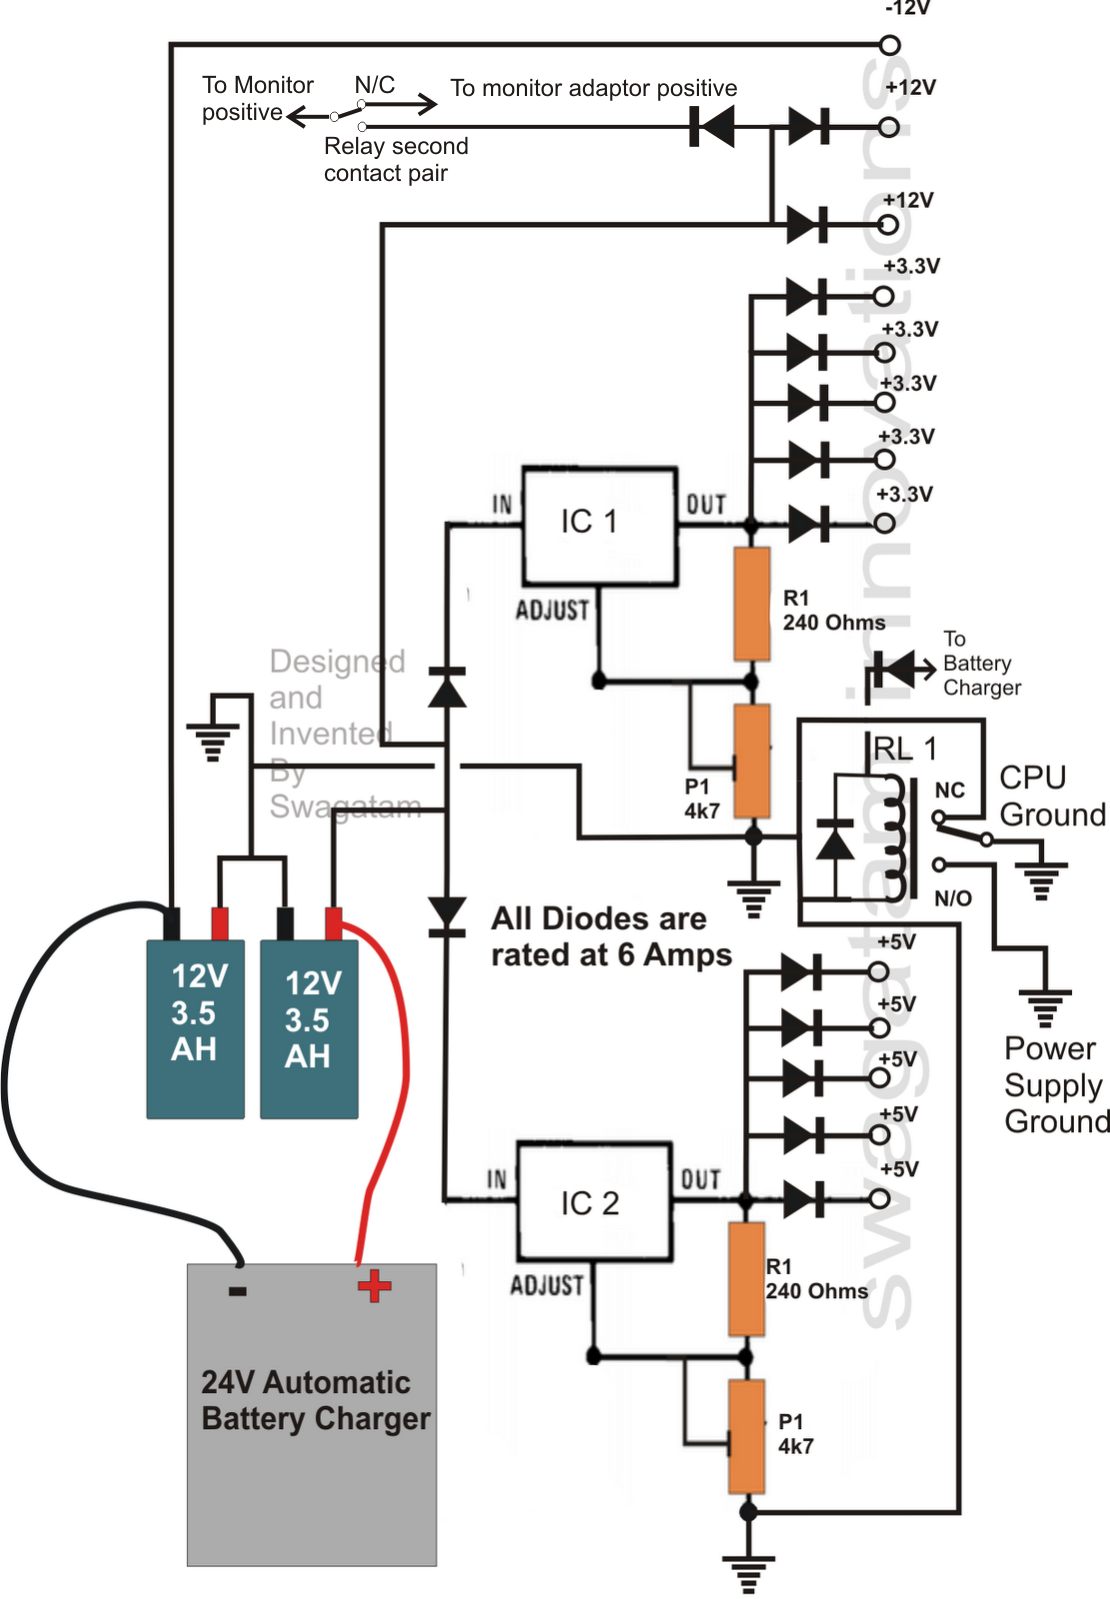 transformerless ups circuit for computers  cpu